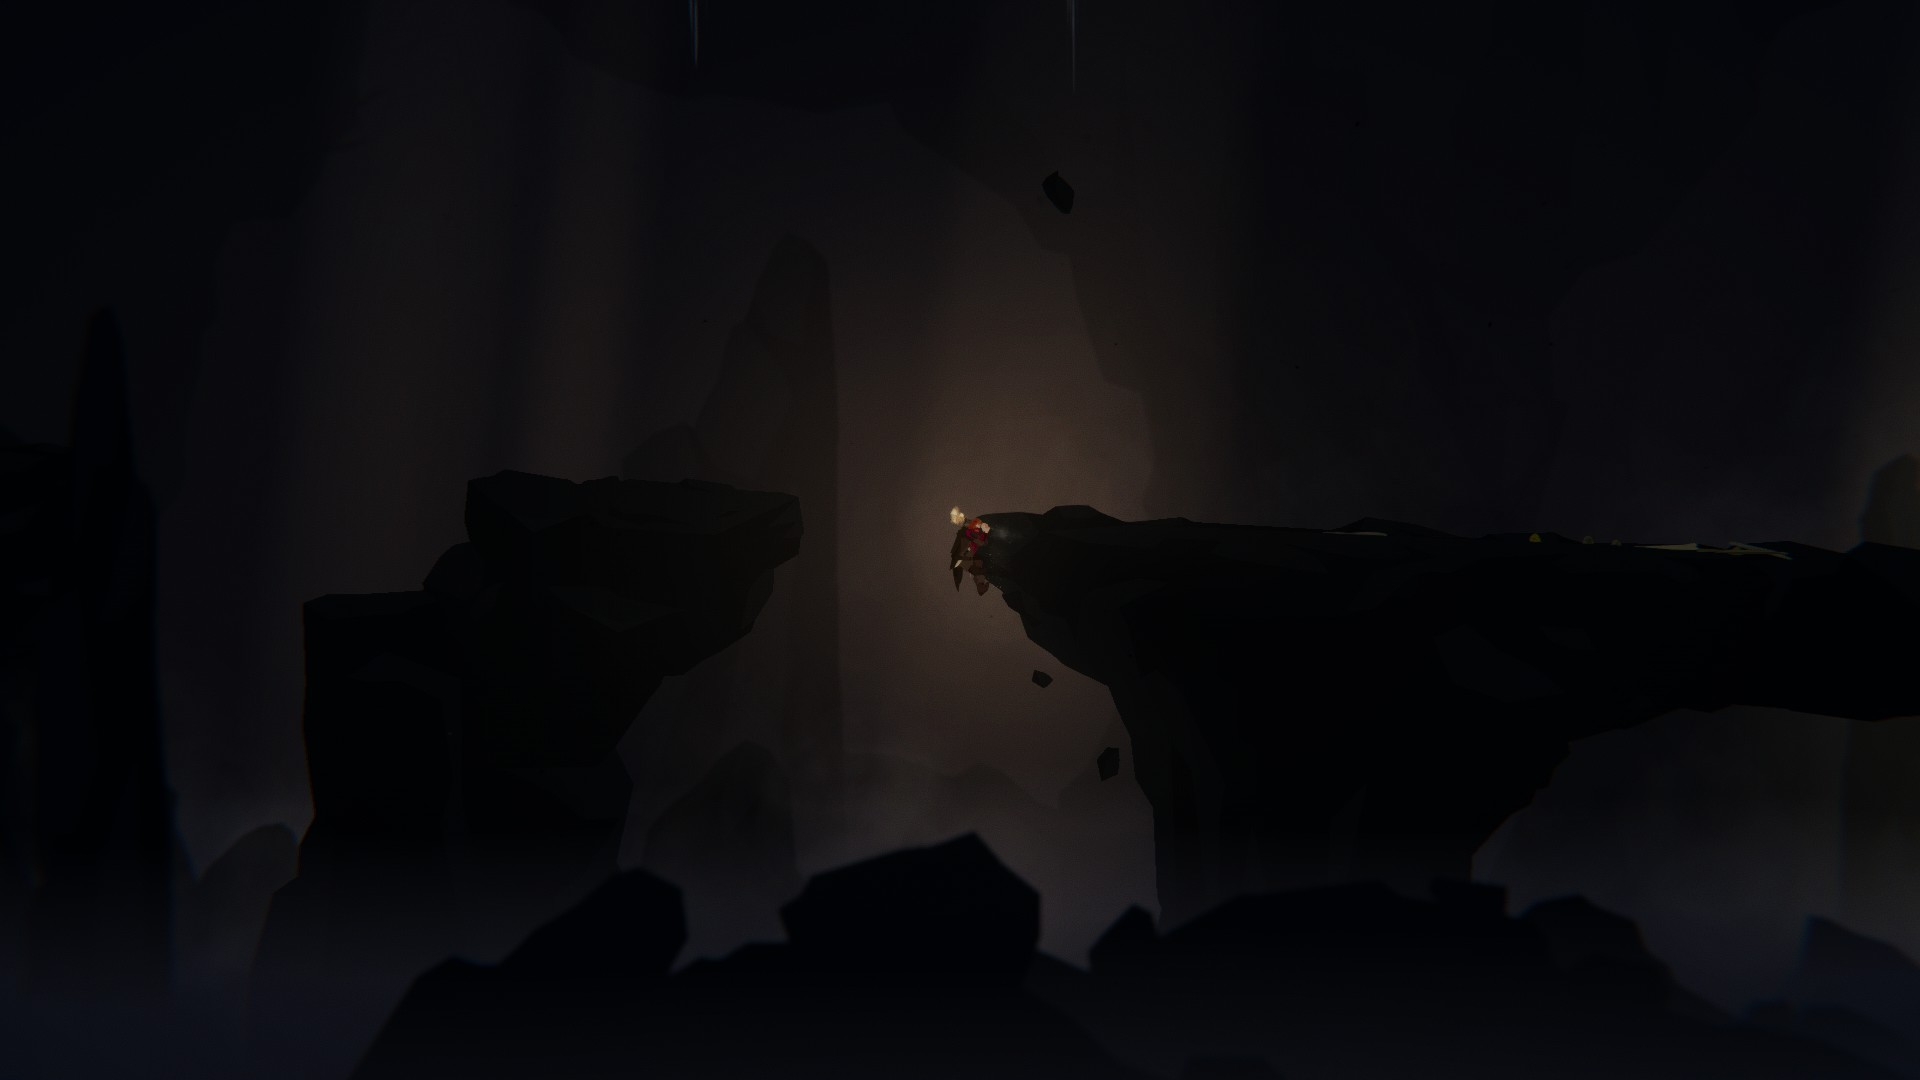 Our man is holding a torch, in a gloomy, dark cave. He is on a rocky outcrop and looks like he has just jumped over a gap in it, just barely grabbing the other side.